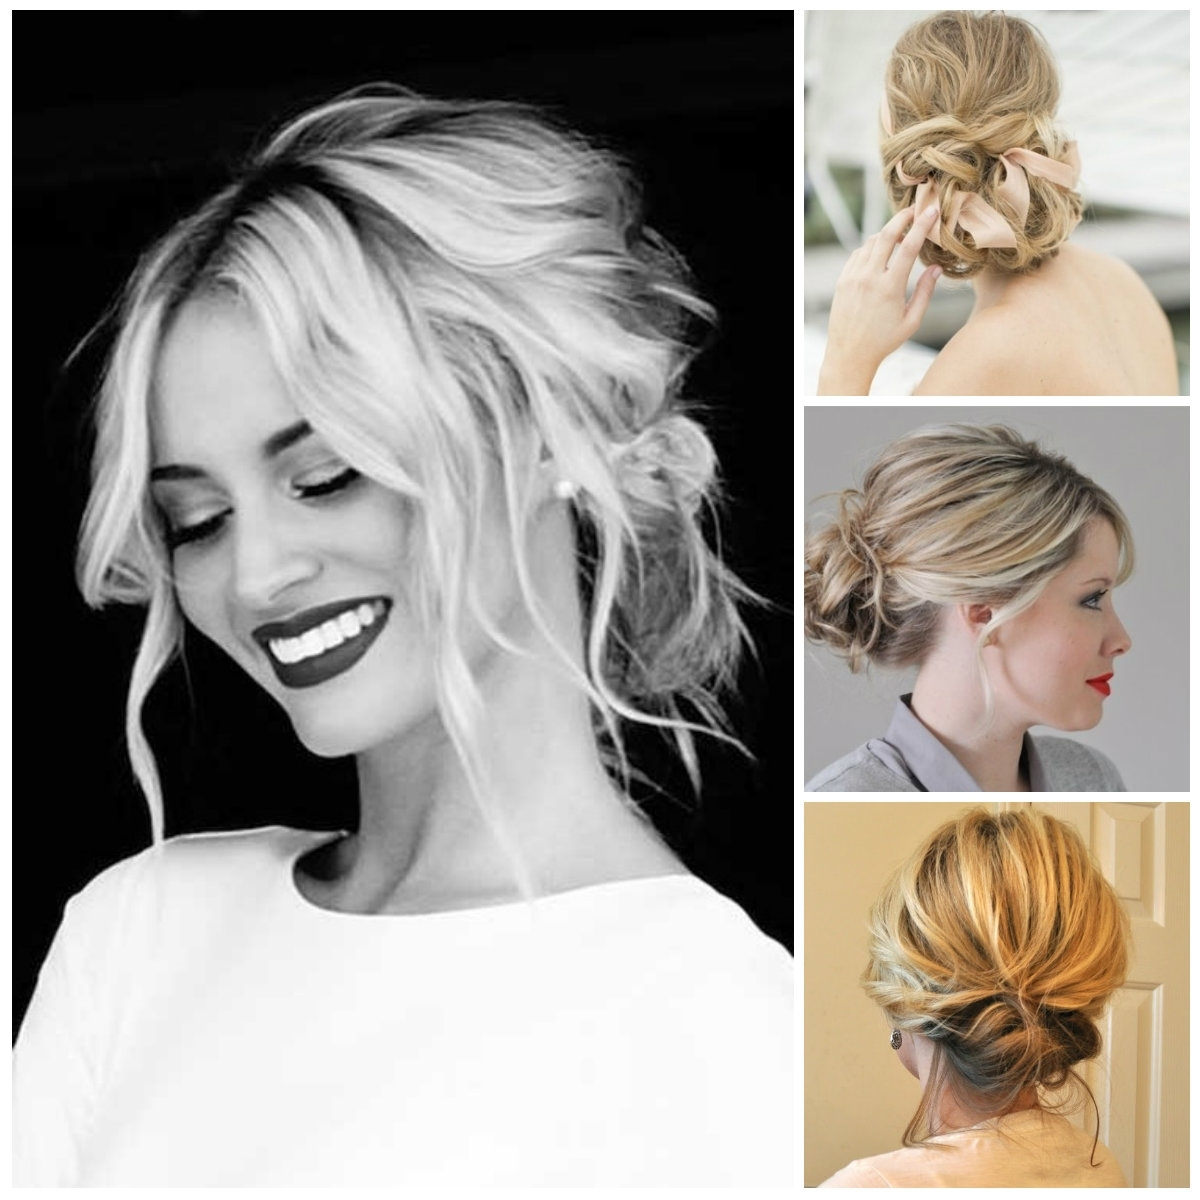 Latest Easy Wedding Hairstyles For Medium Length Hair Inside Easy Updo Medium Hair – Hairstyle For Women & Man (View 5 of 15)